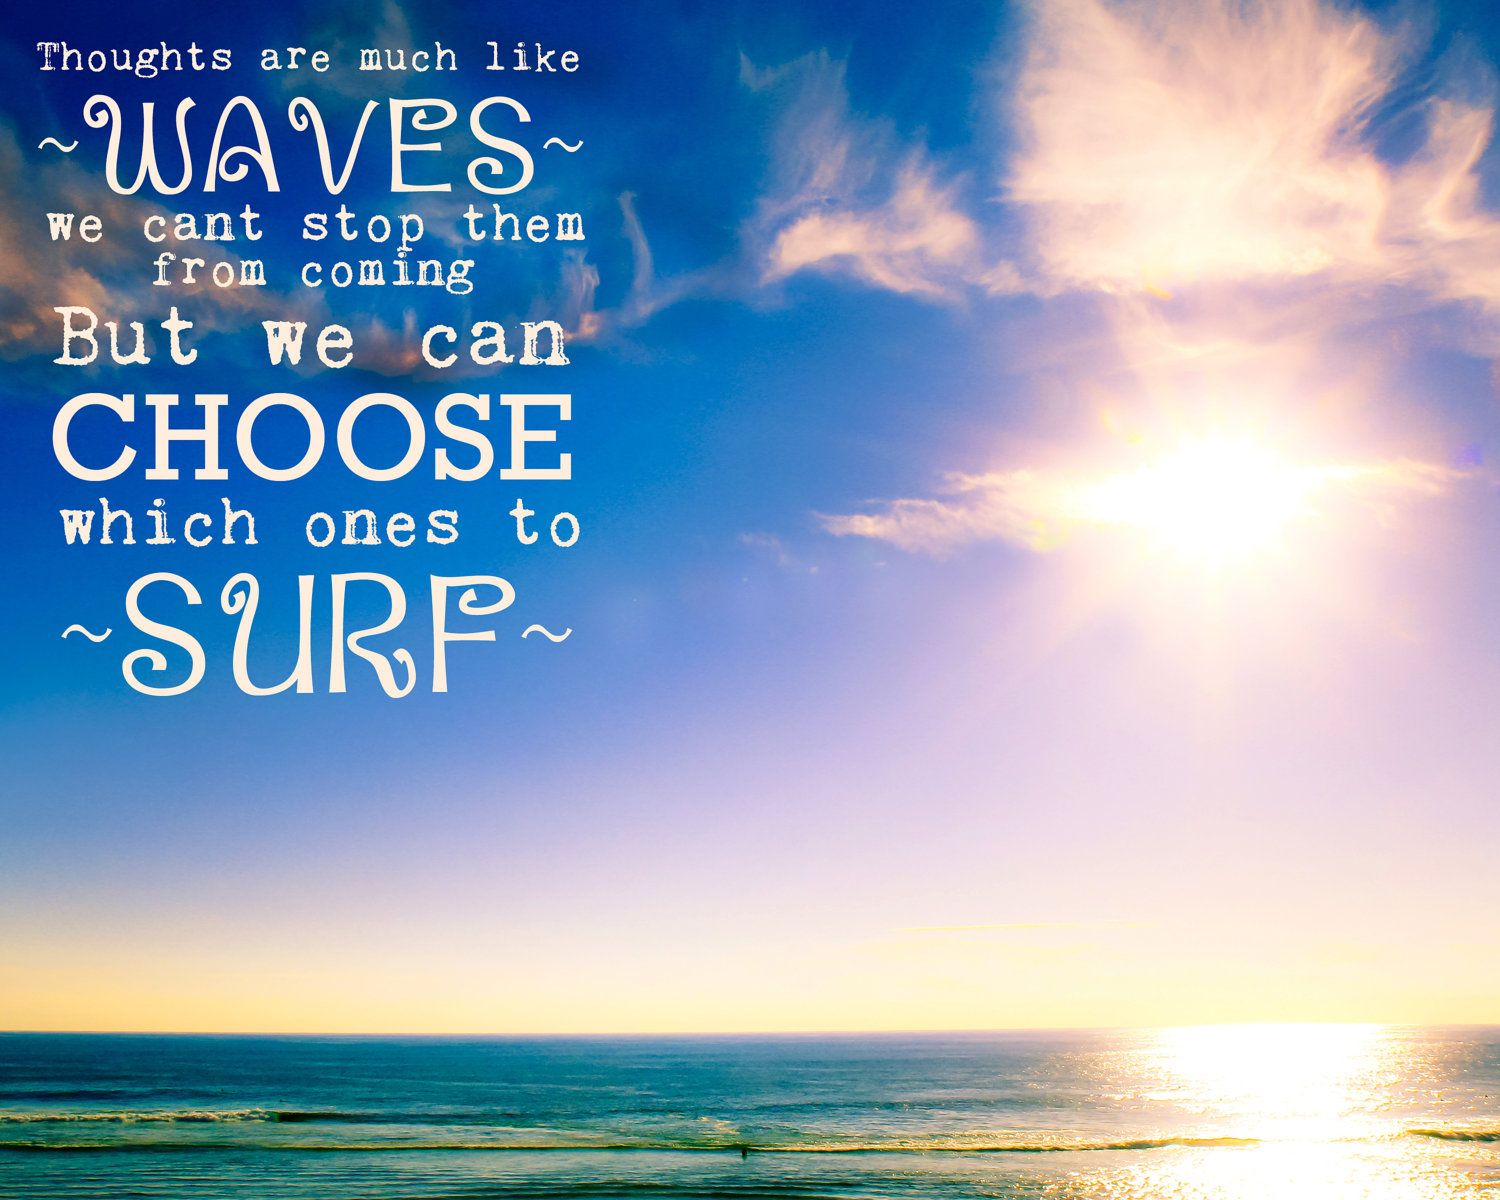 Hawaiian Quotes About Strength: Inspirational Quote, Photo, 8x10, Gratitude, Sea, Sky